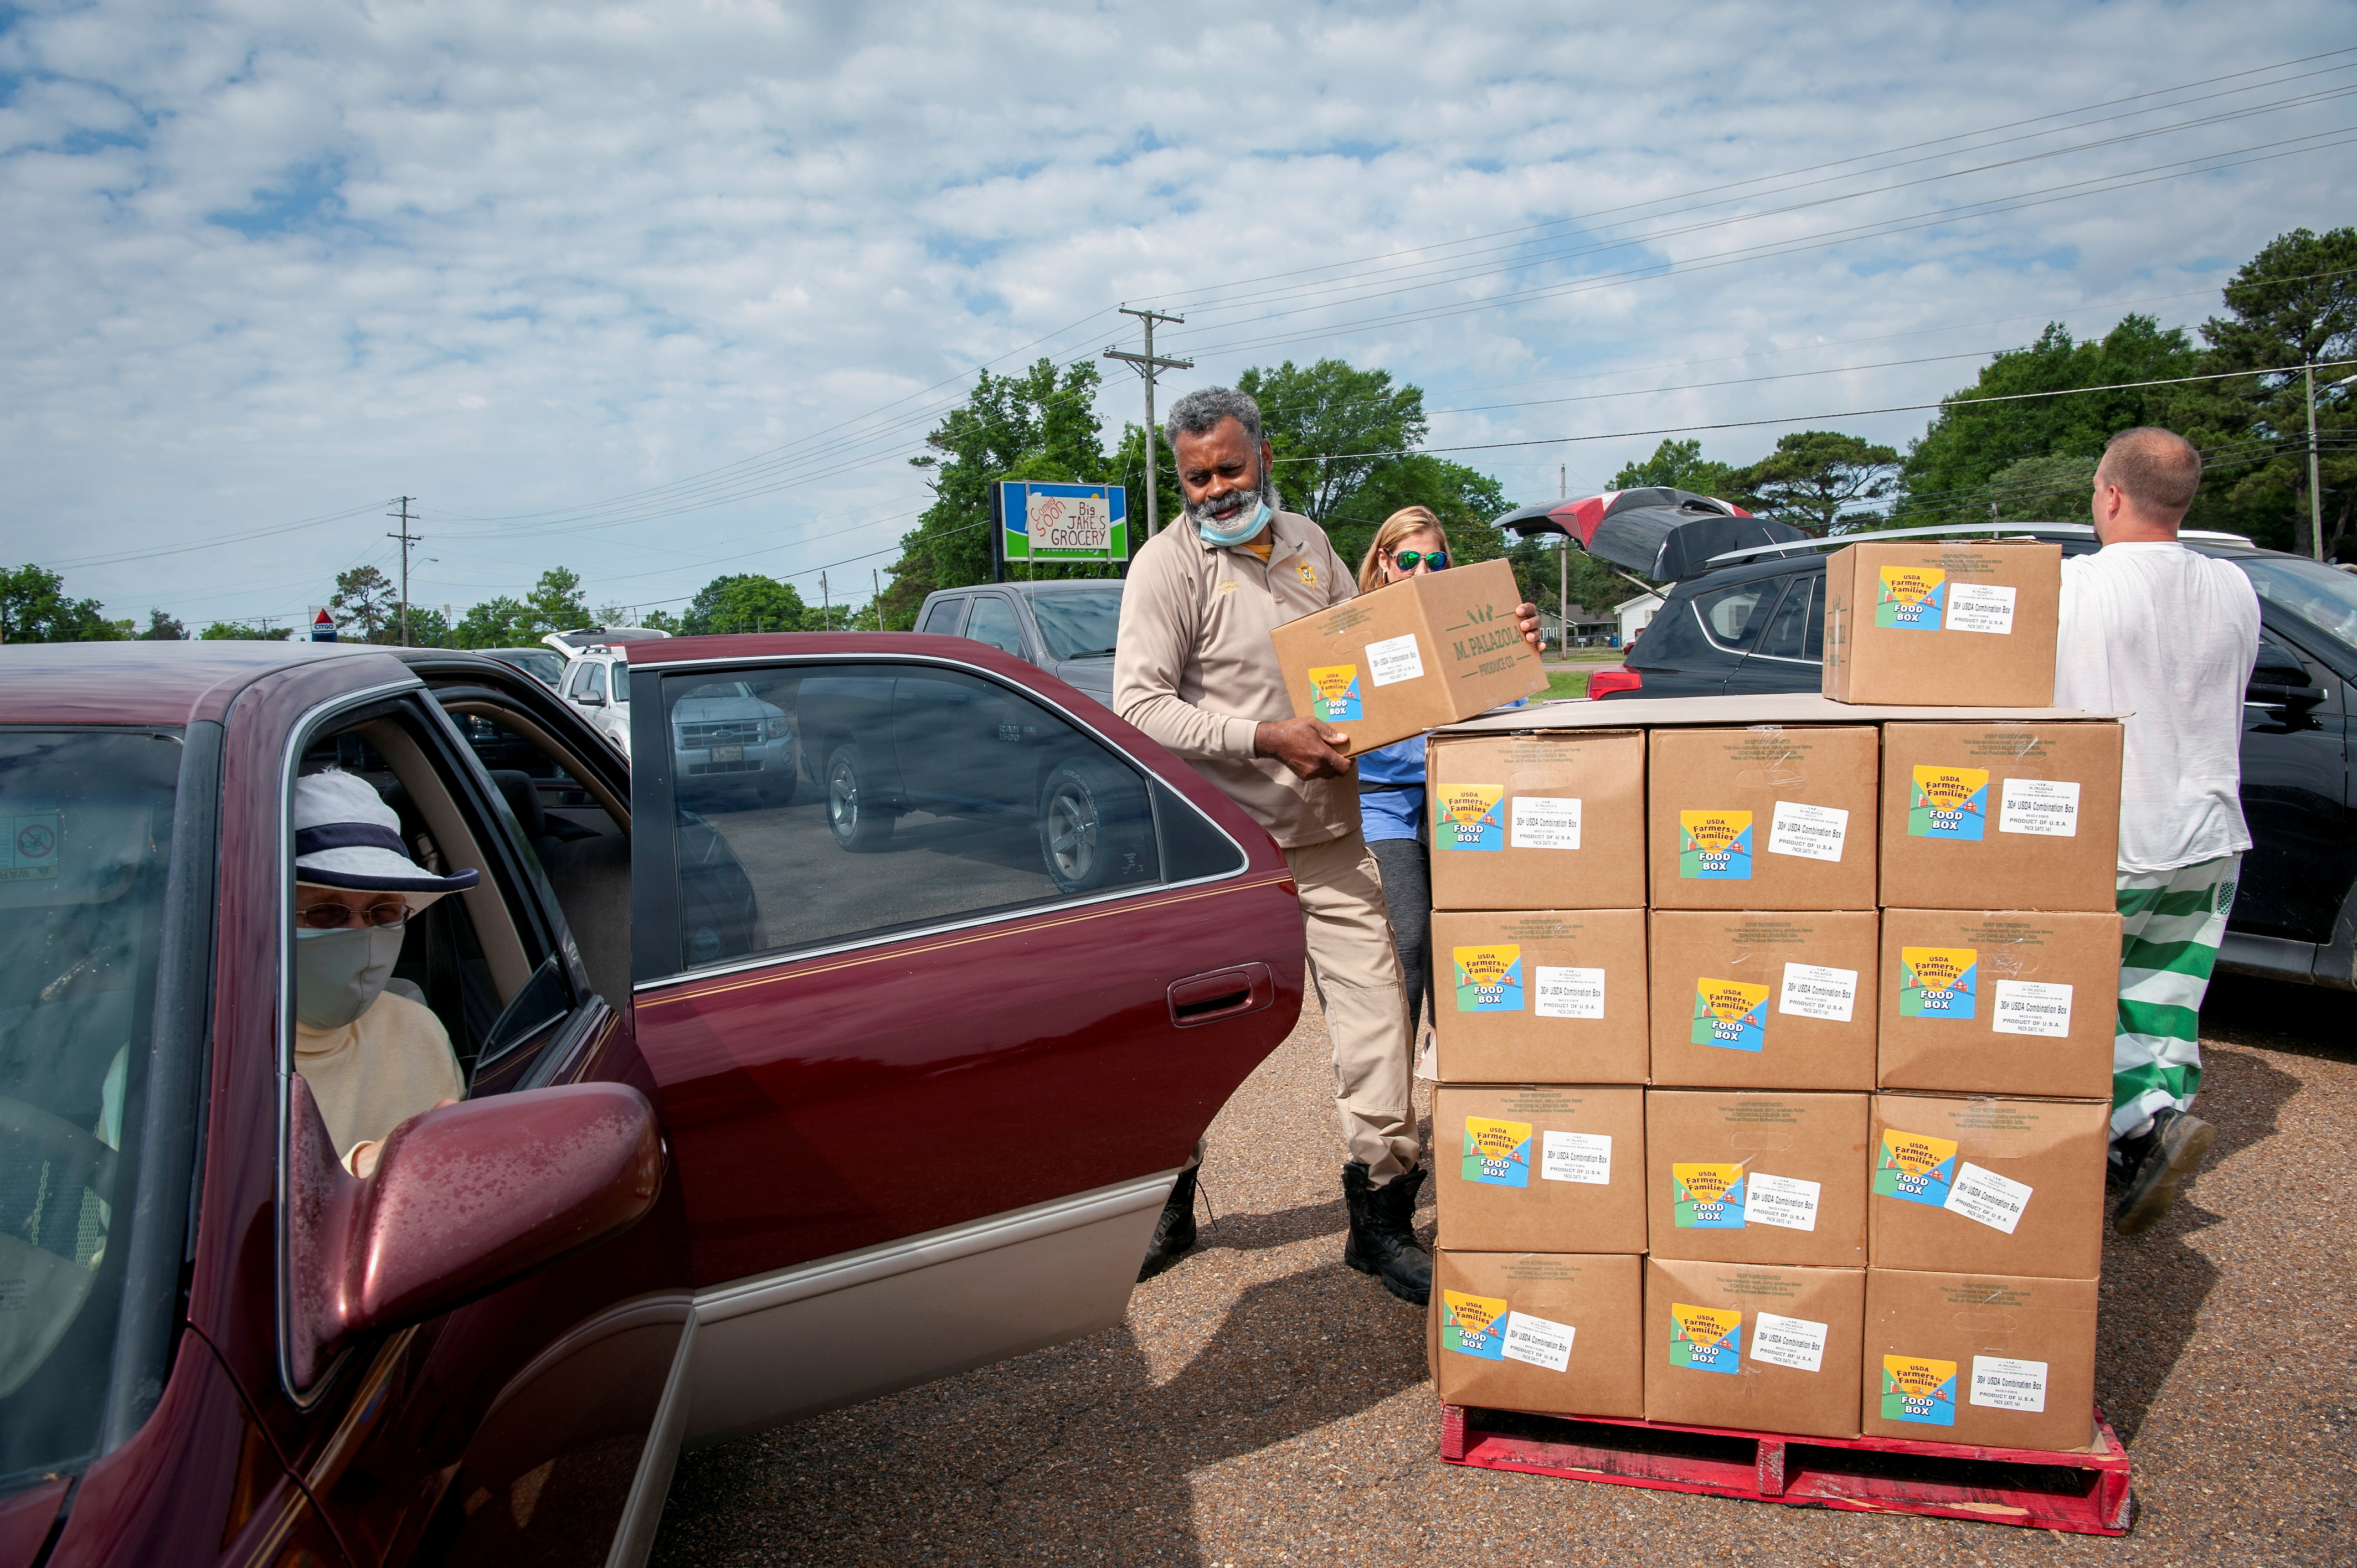 A Quitman County Sheriff's Department officer distributes food boxes at an aid site in Marks, Mississippi, U.S., May 24, 2021.  REUTERS/Rory Doyle